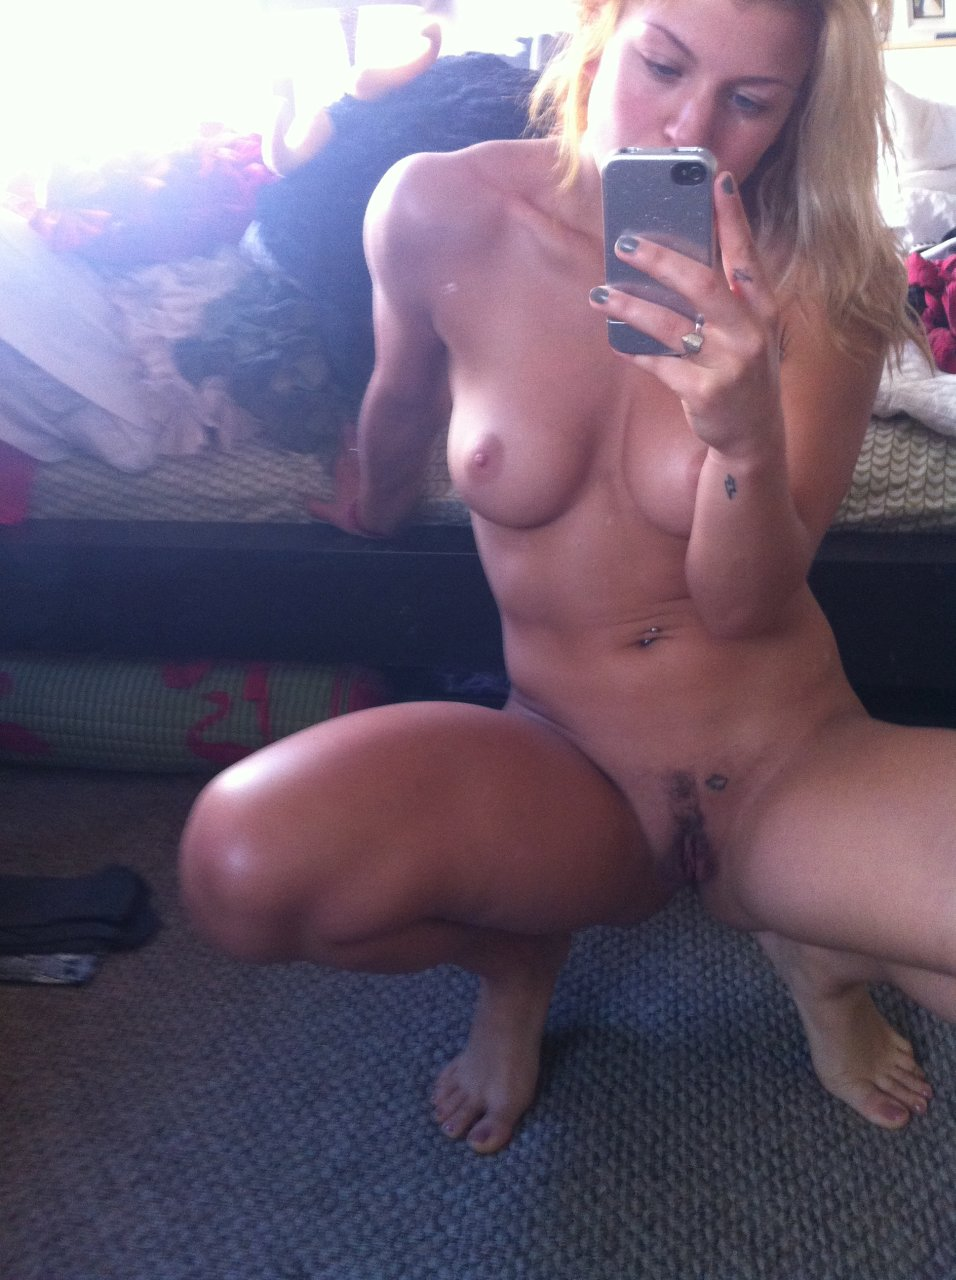 Janelle Ginestra Nudes & Sex Tape Leaked 0001